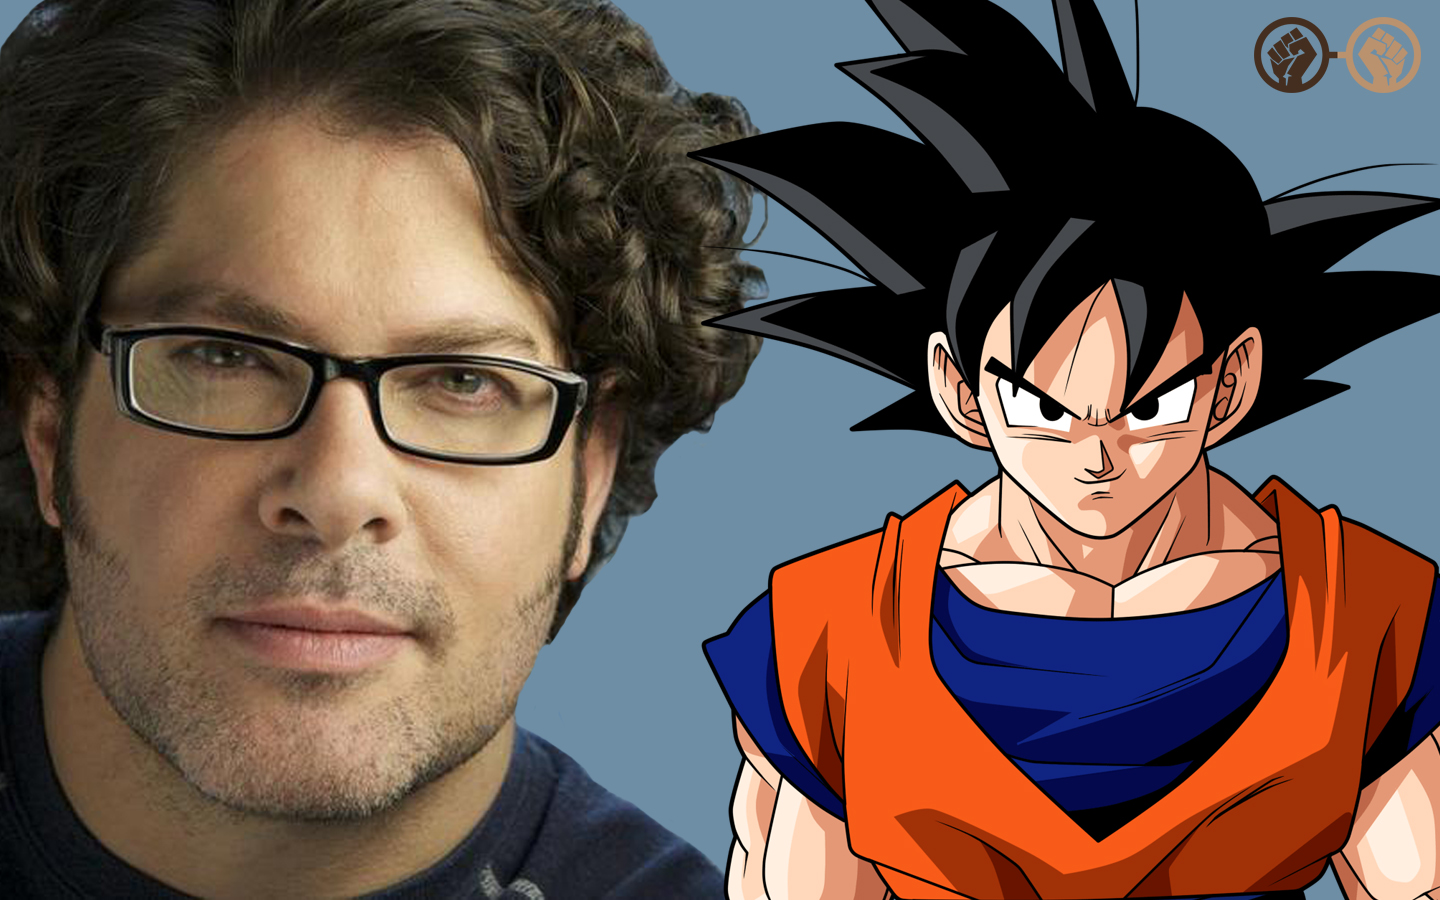 Interview: Sean Schemmel Talks Playing Goku, the Values of Dragon Ball & More! - Geeks Of Color